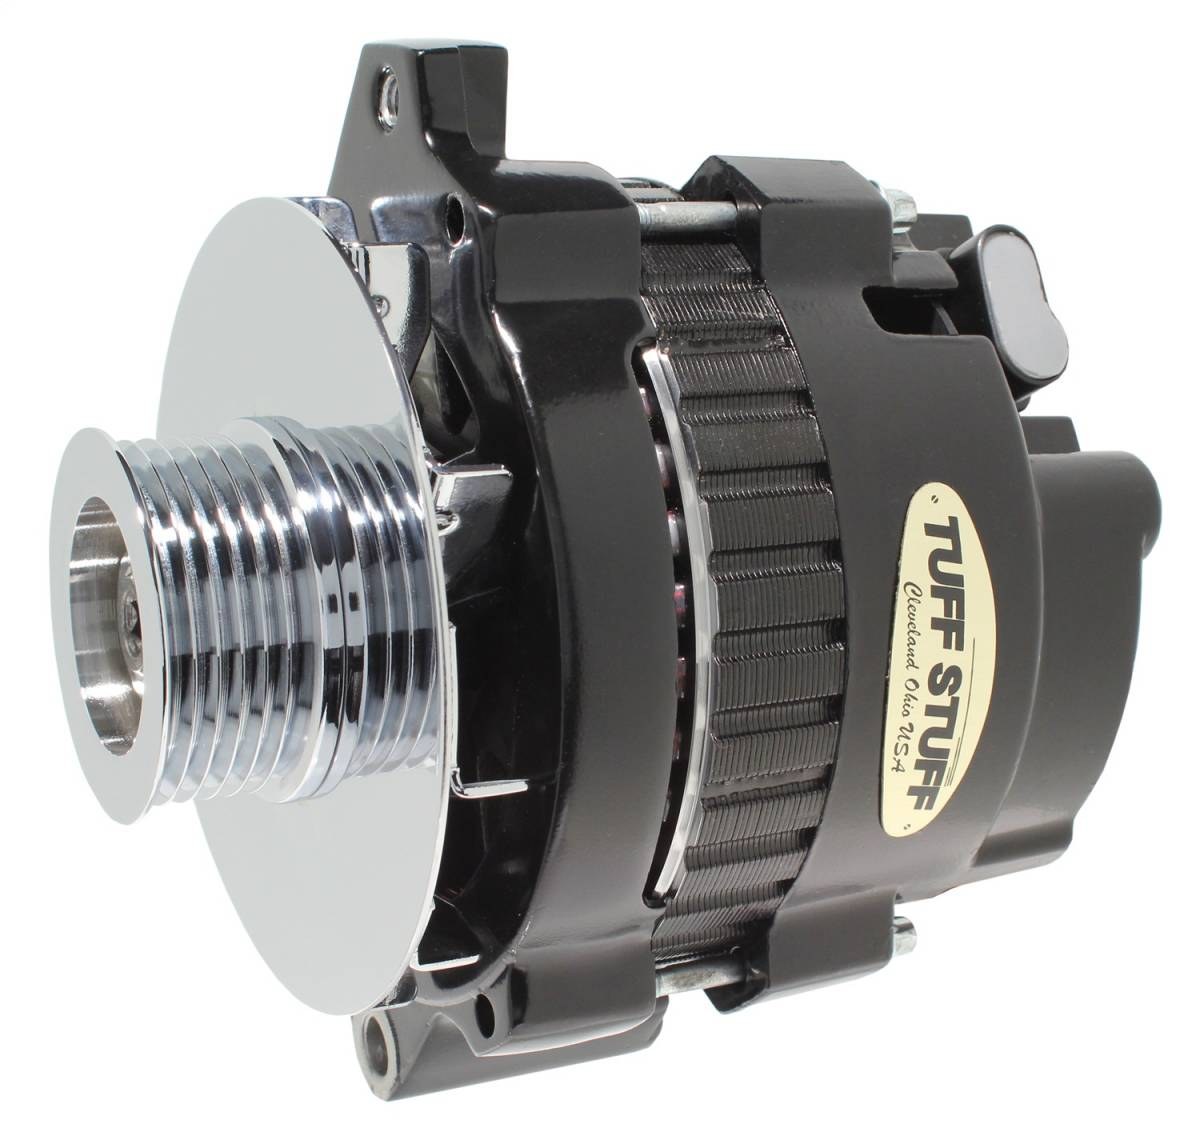 Tuff Stuff Performance - Alternator 105 AMP 1 Wire Or OEM 6 Groove Pulley 6.125 in. Bolt To Bolt Black 7866E6G